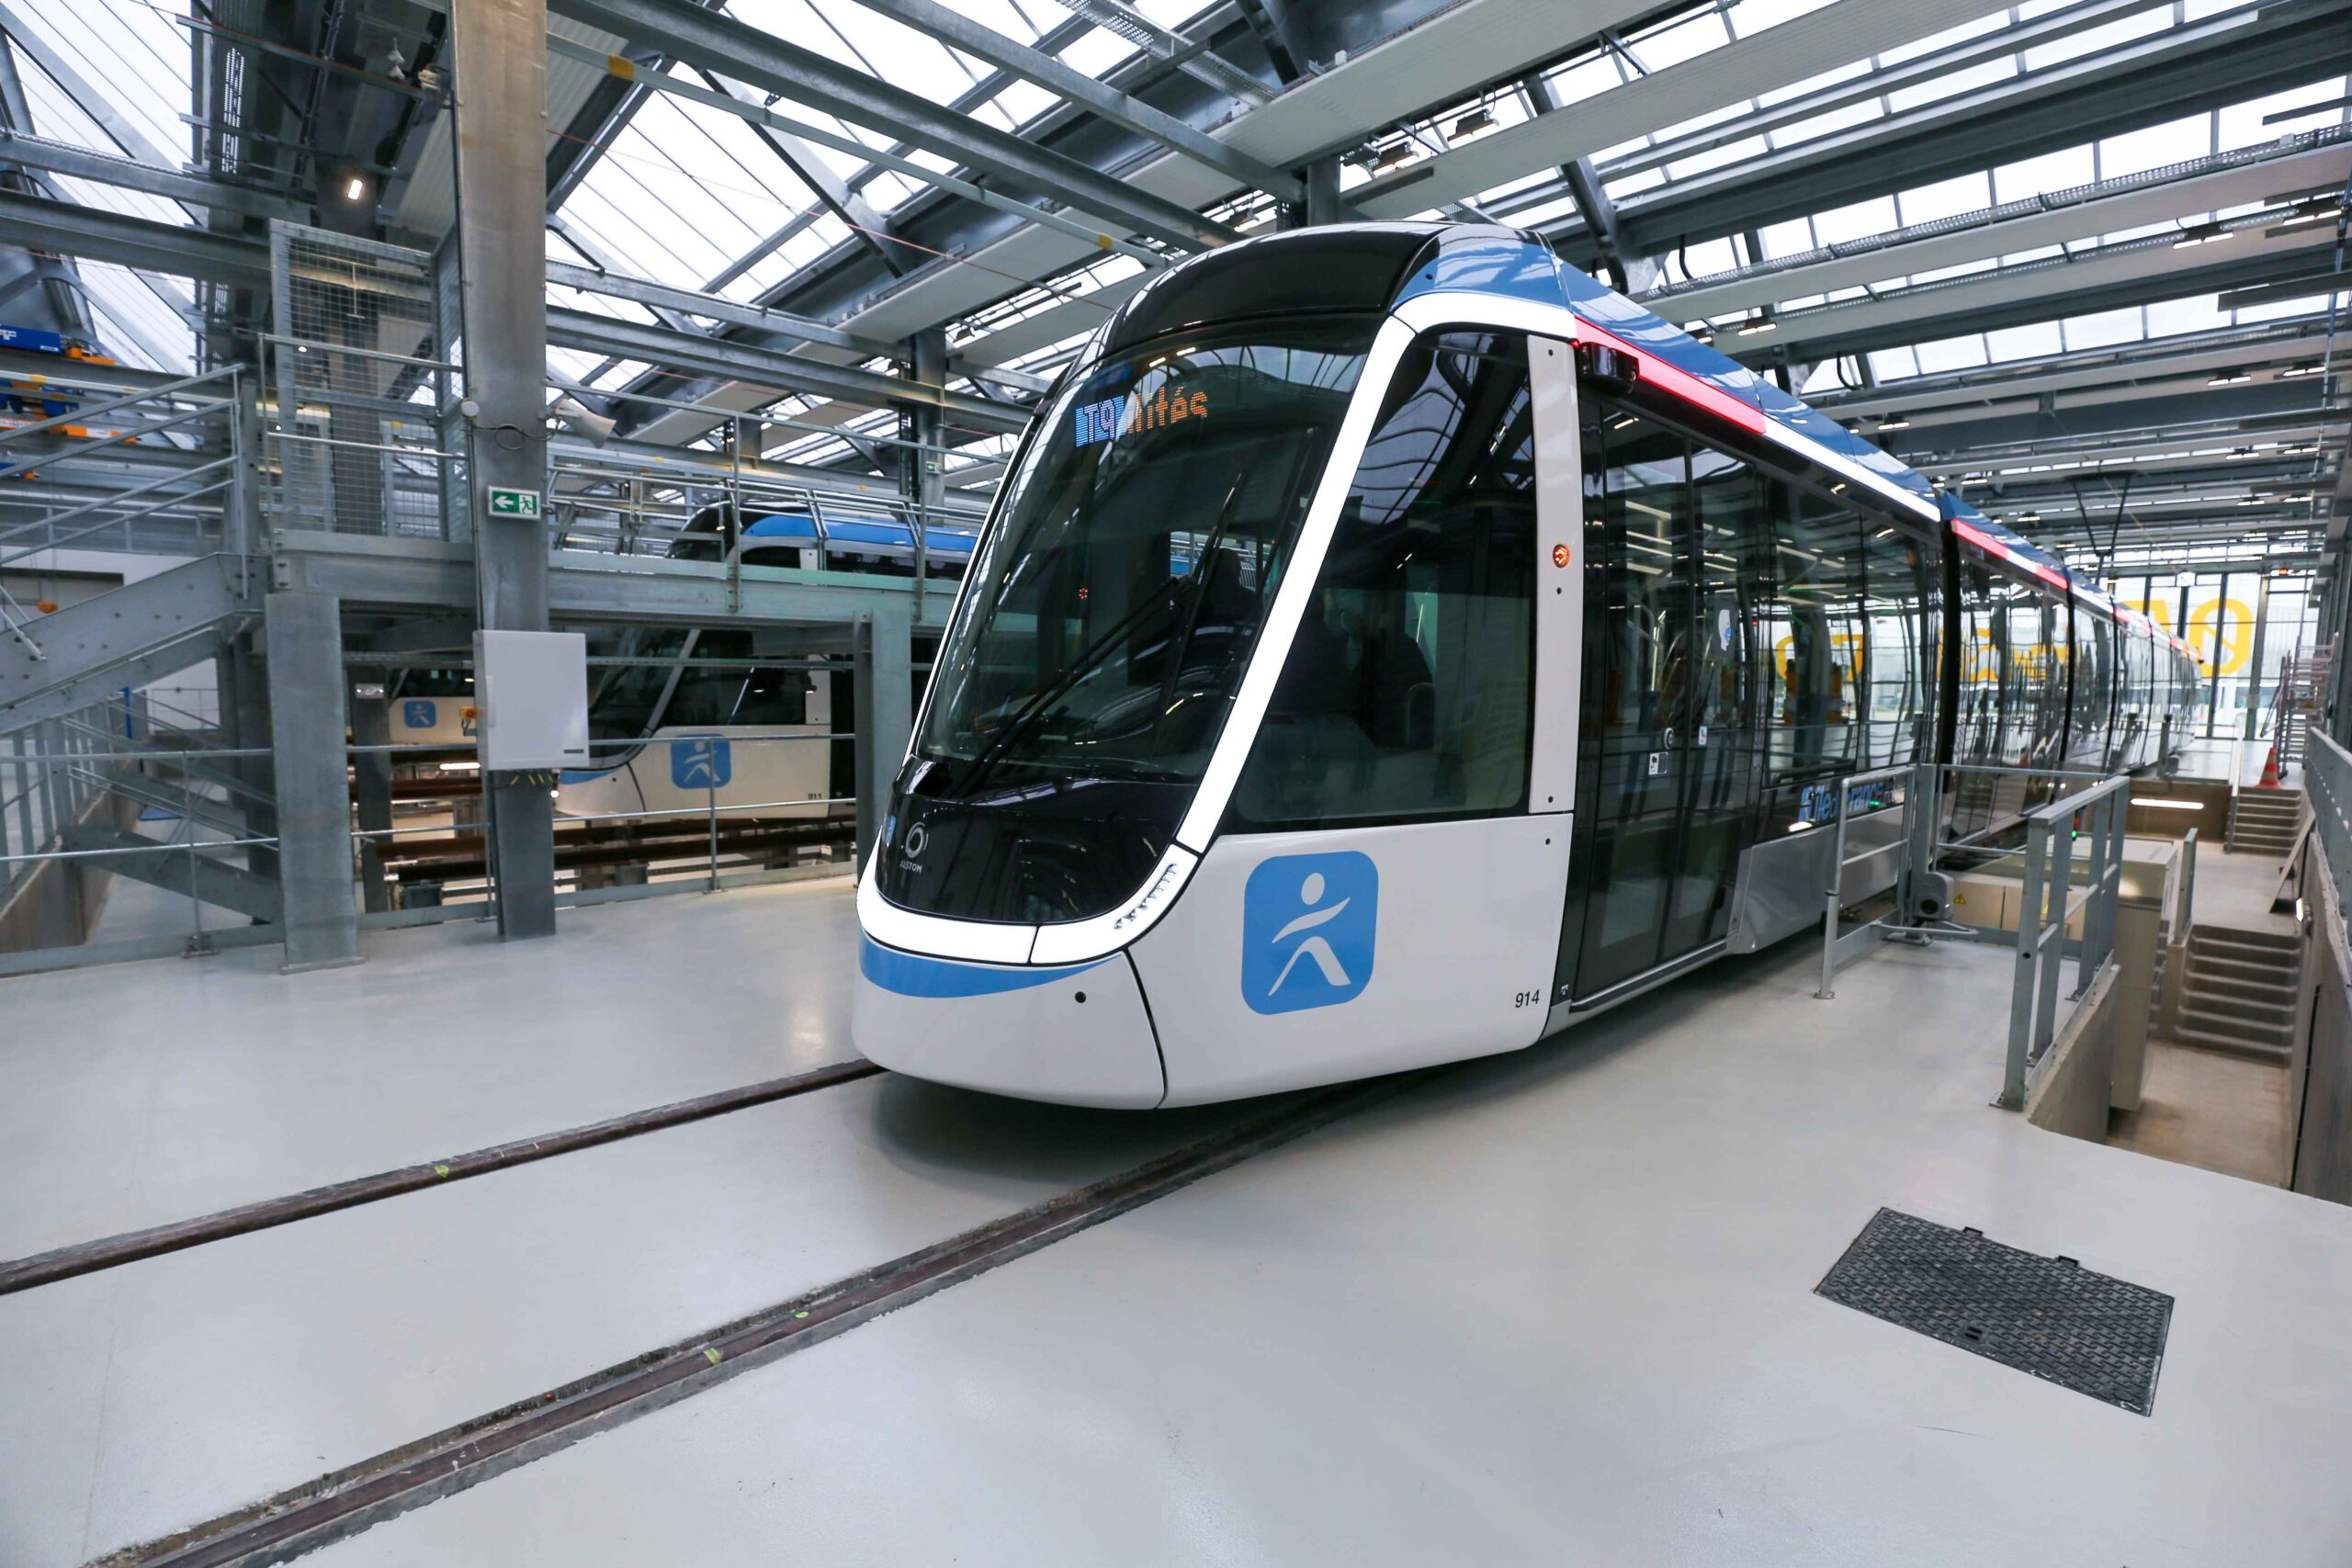 The repair facilities of the the new tramway T9 tram line between Porte de Choisy and Orly City, southeastern Paris, on April 10, 2021 at Orly City, during the open day of the line.Line T9 connects Porte de Choisy Paris Métro station and the centre of O